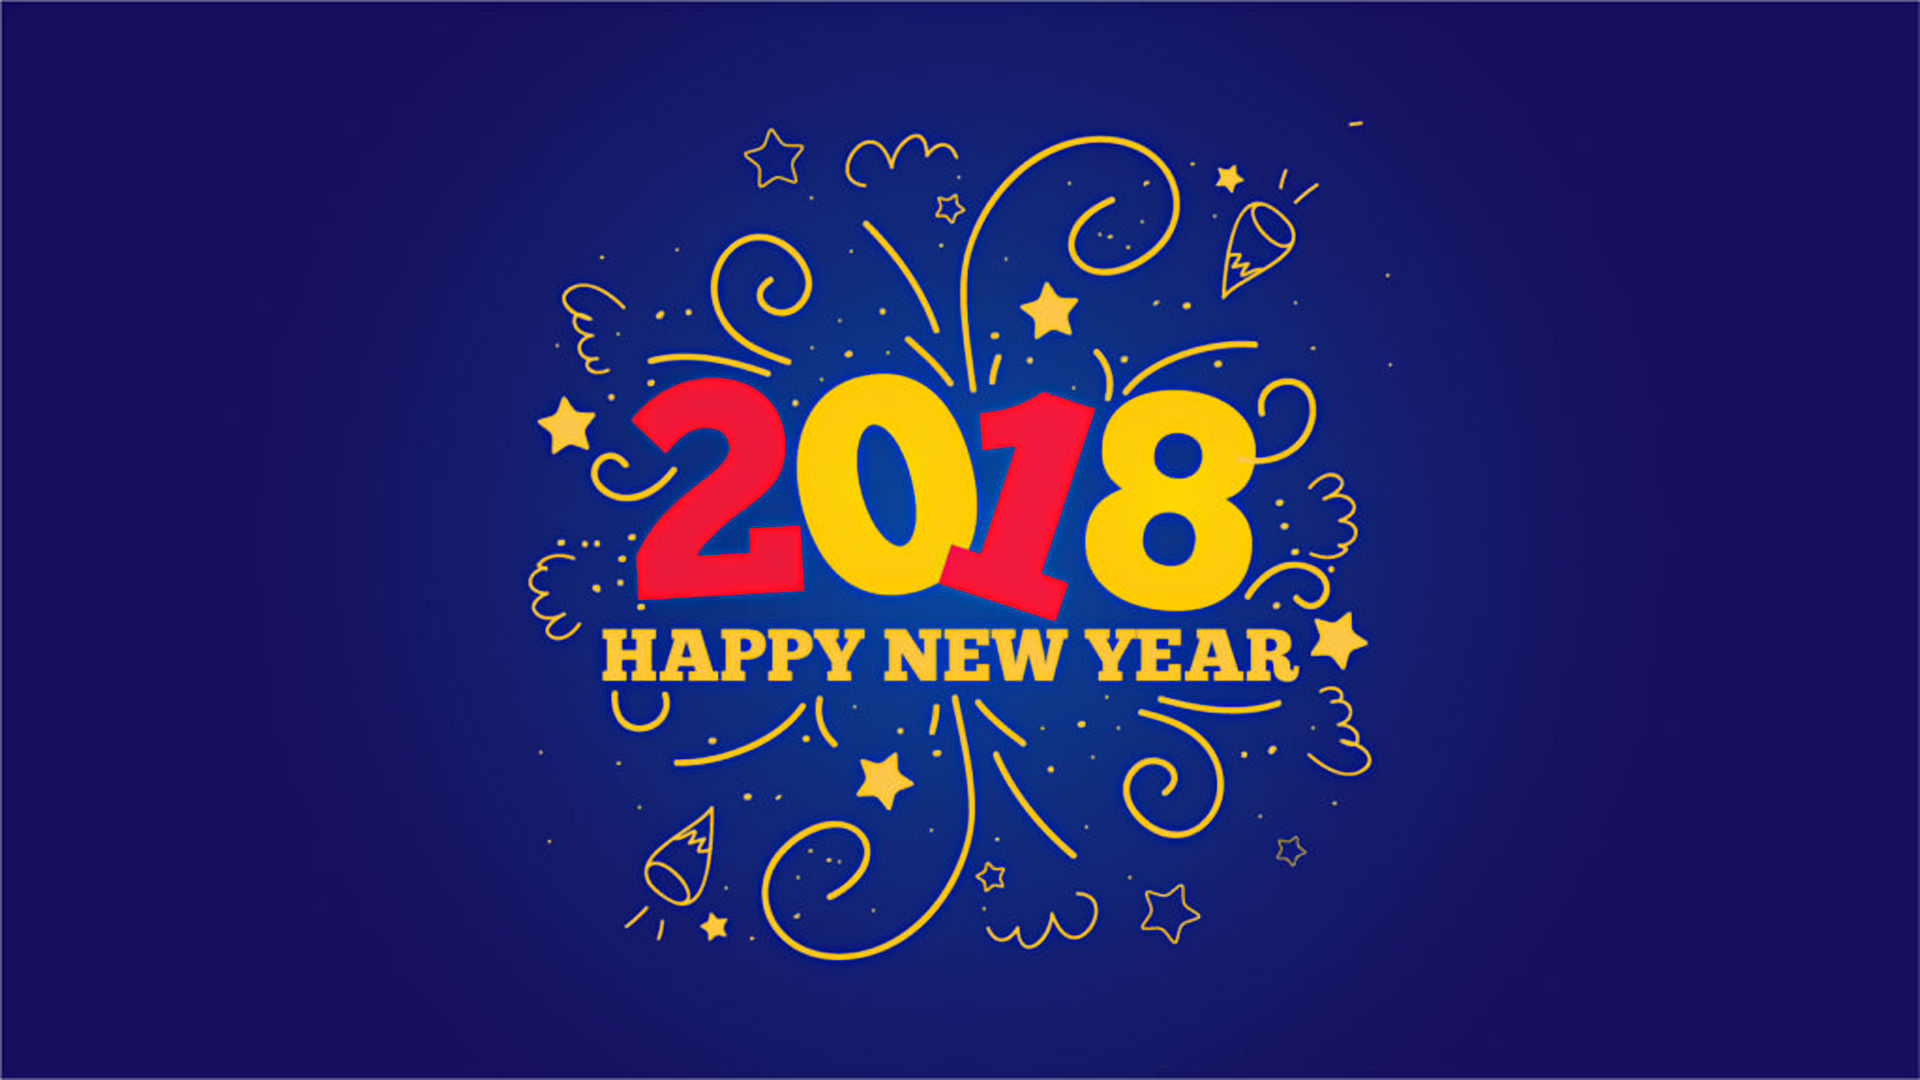 best happy new year 2018 wallpaper images for desktops in